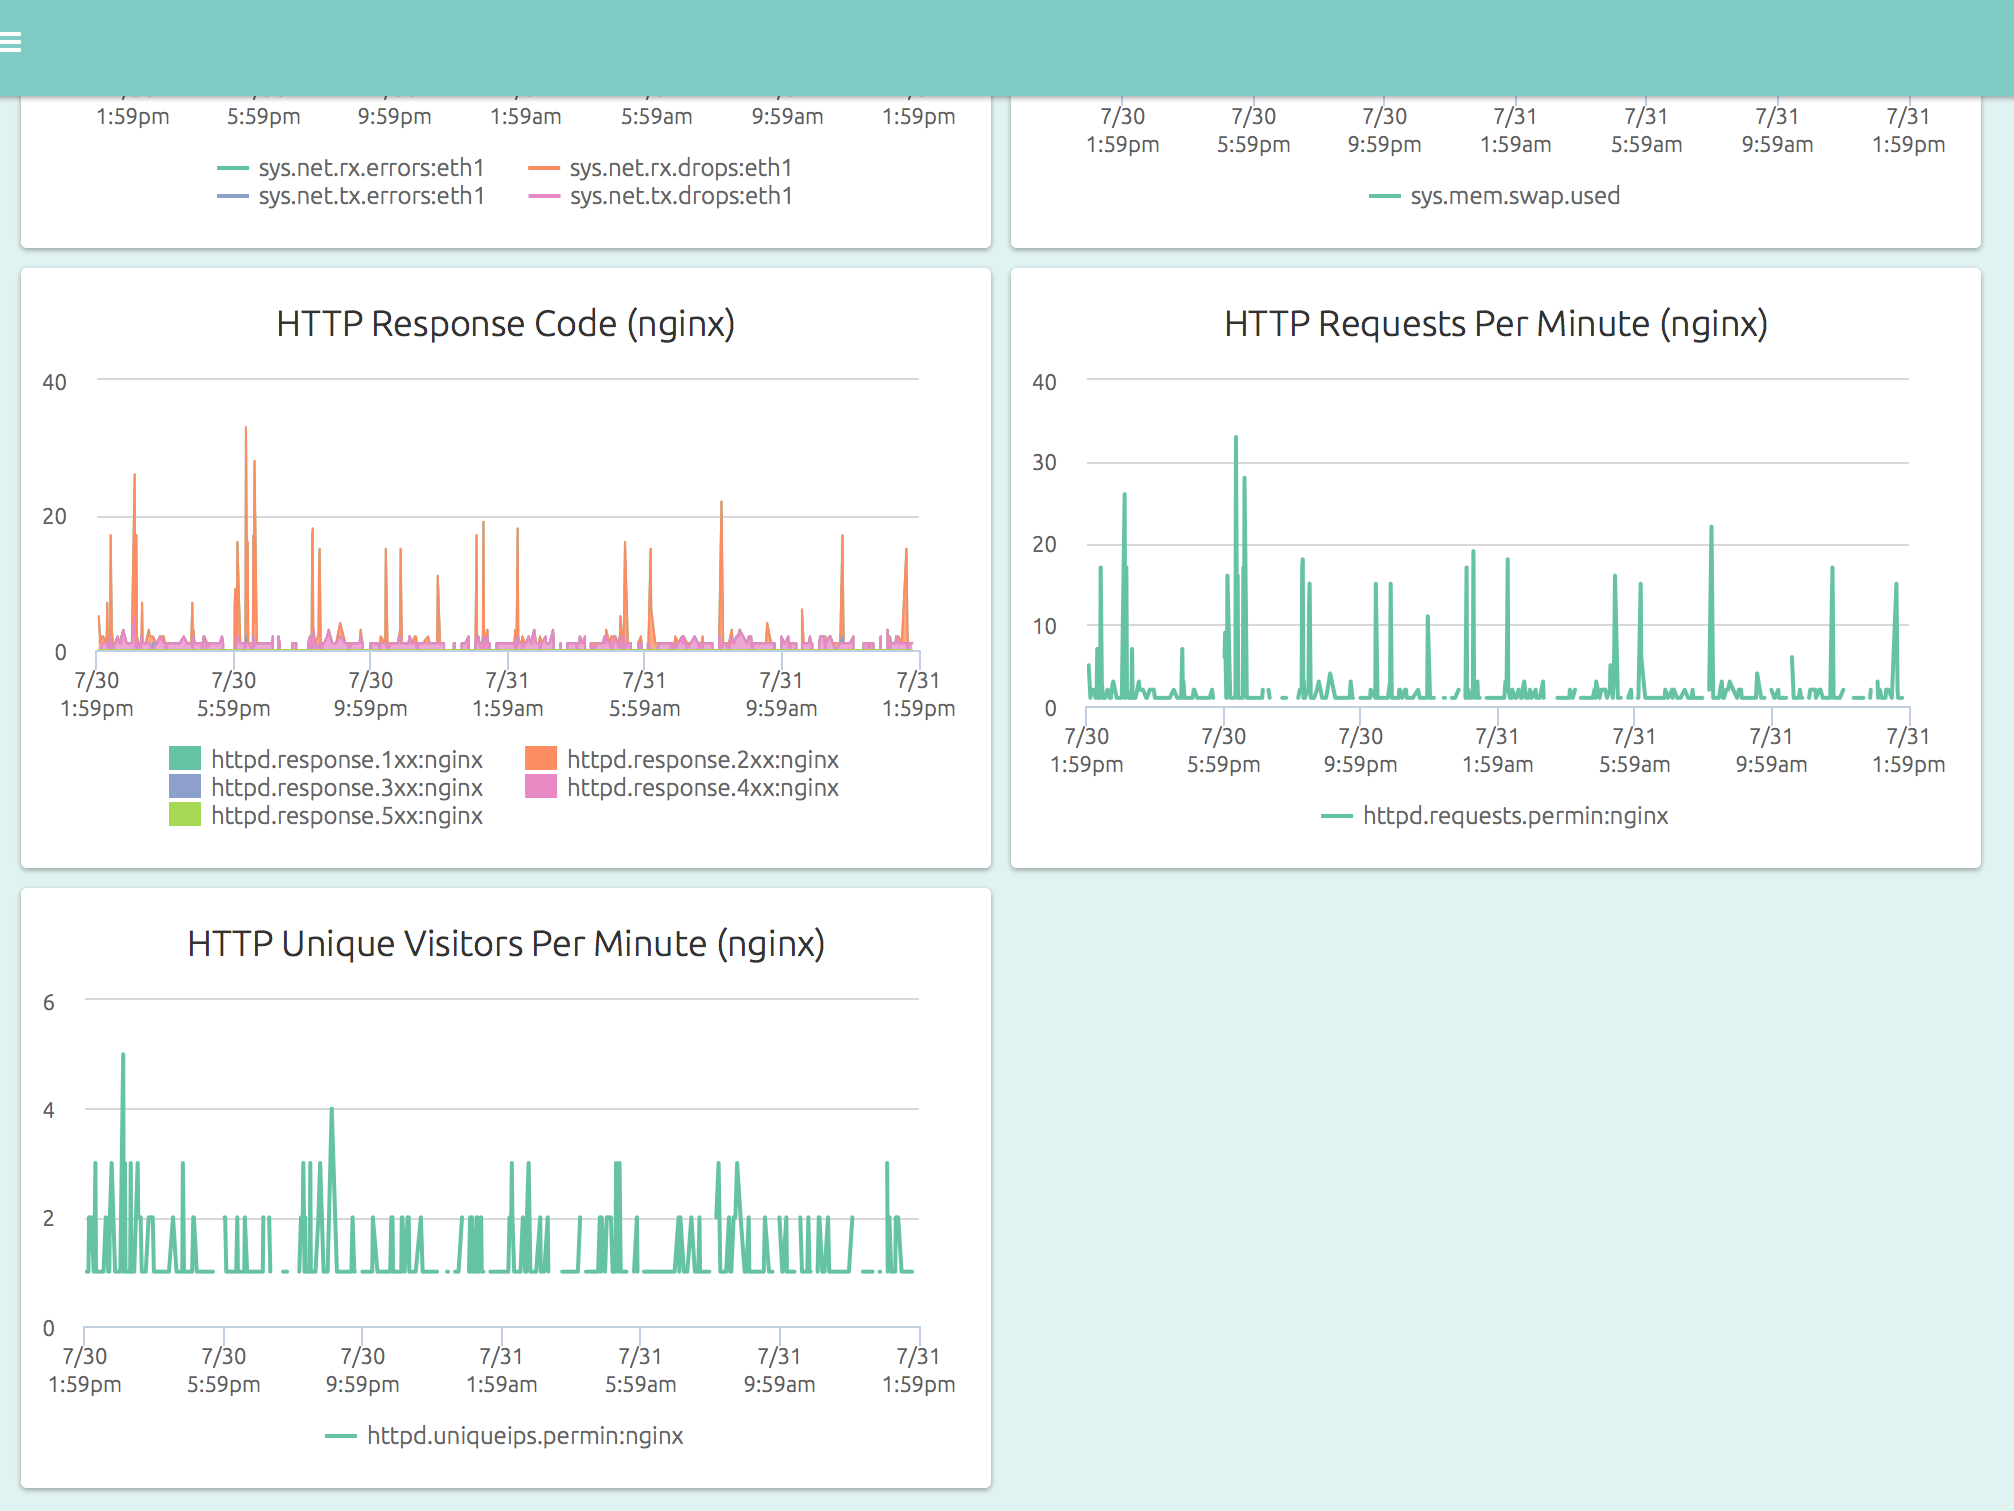 http server dashboard, http response code (nginx), http requests per minute (nginx), http unique visitors per minute (nginx)